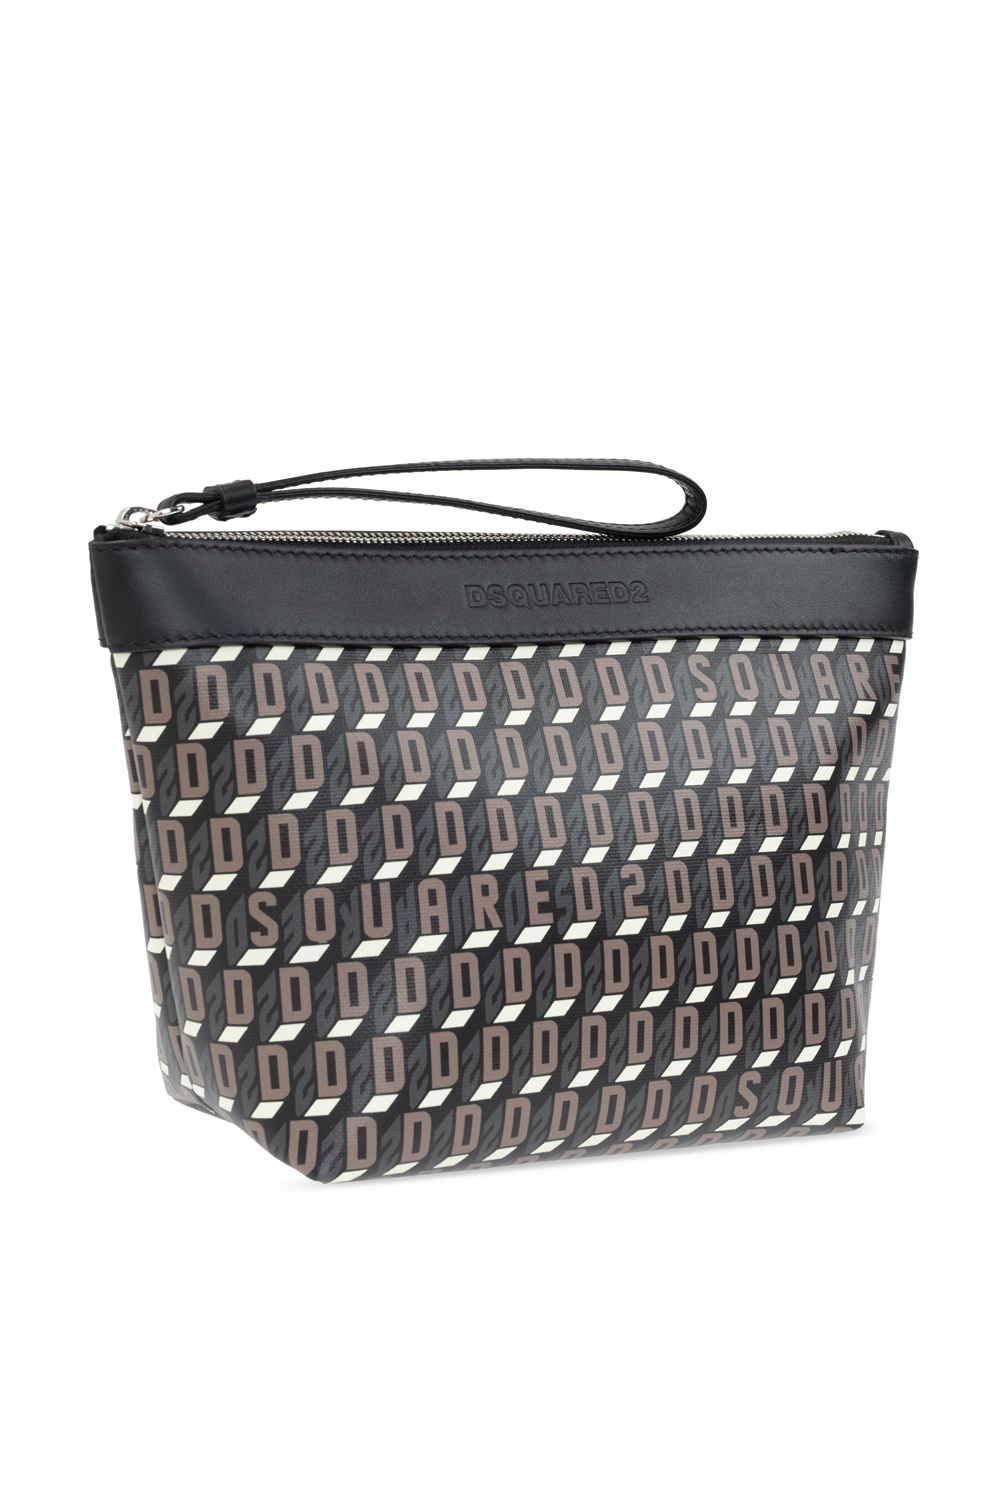 Dsquared2 Wash bag with logo